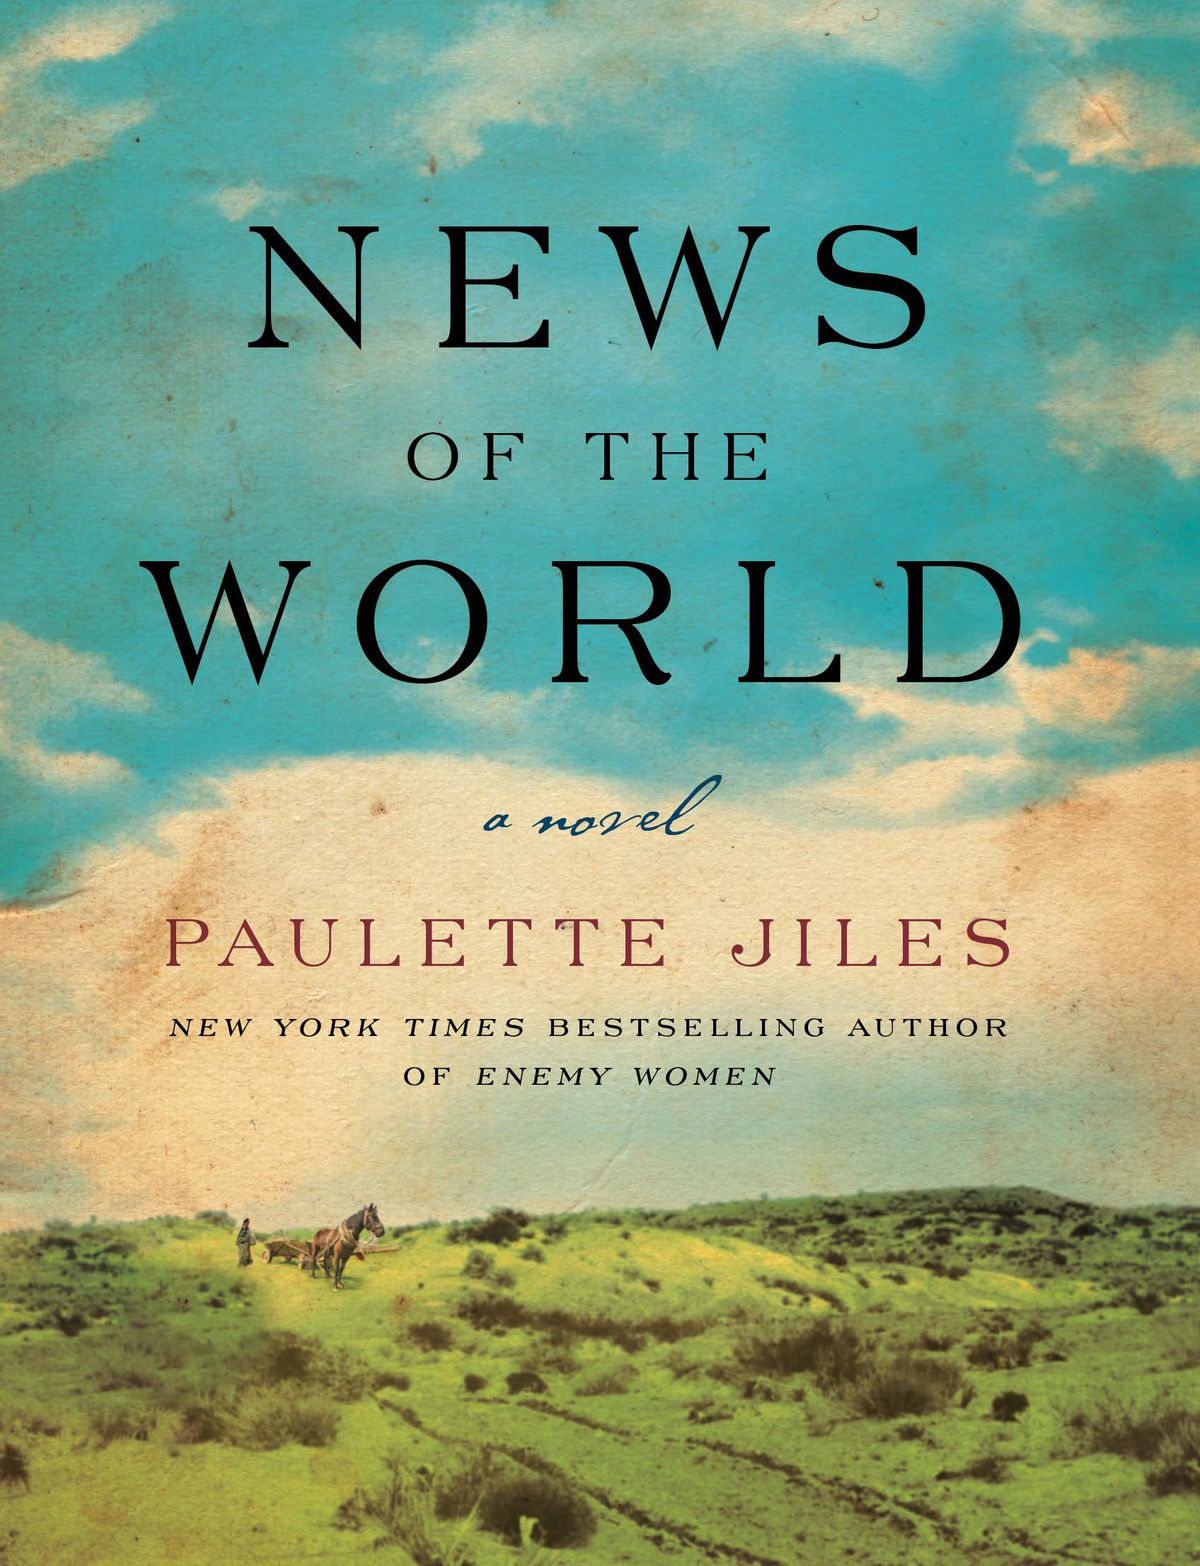 cover art for News of the World by Paulette Jiles